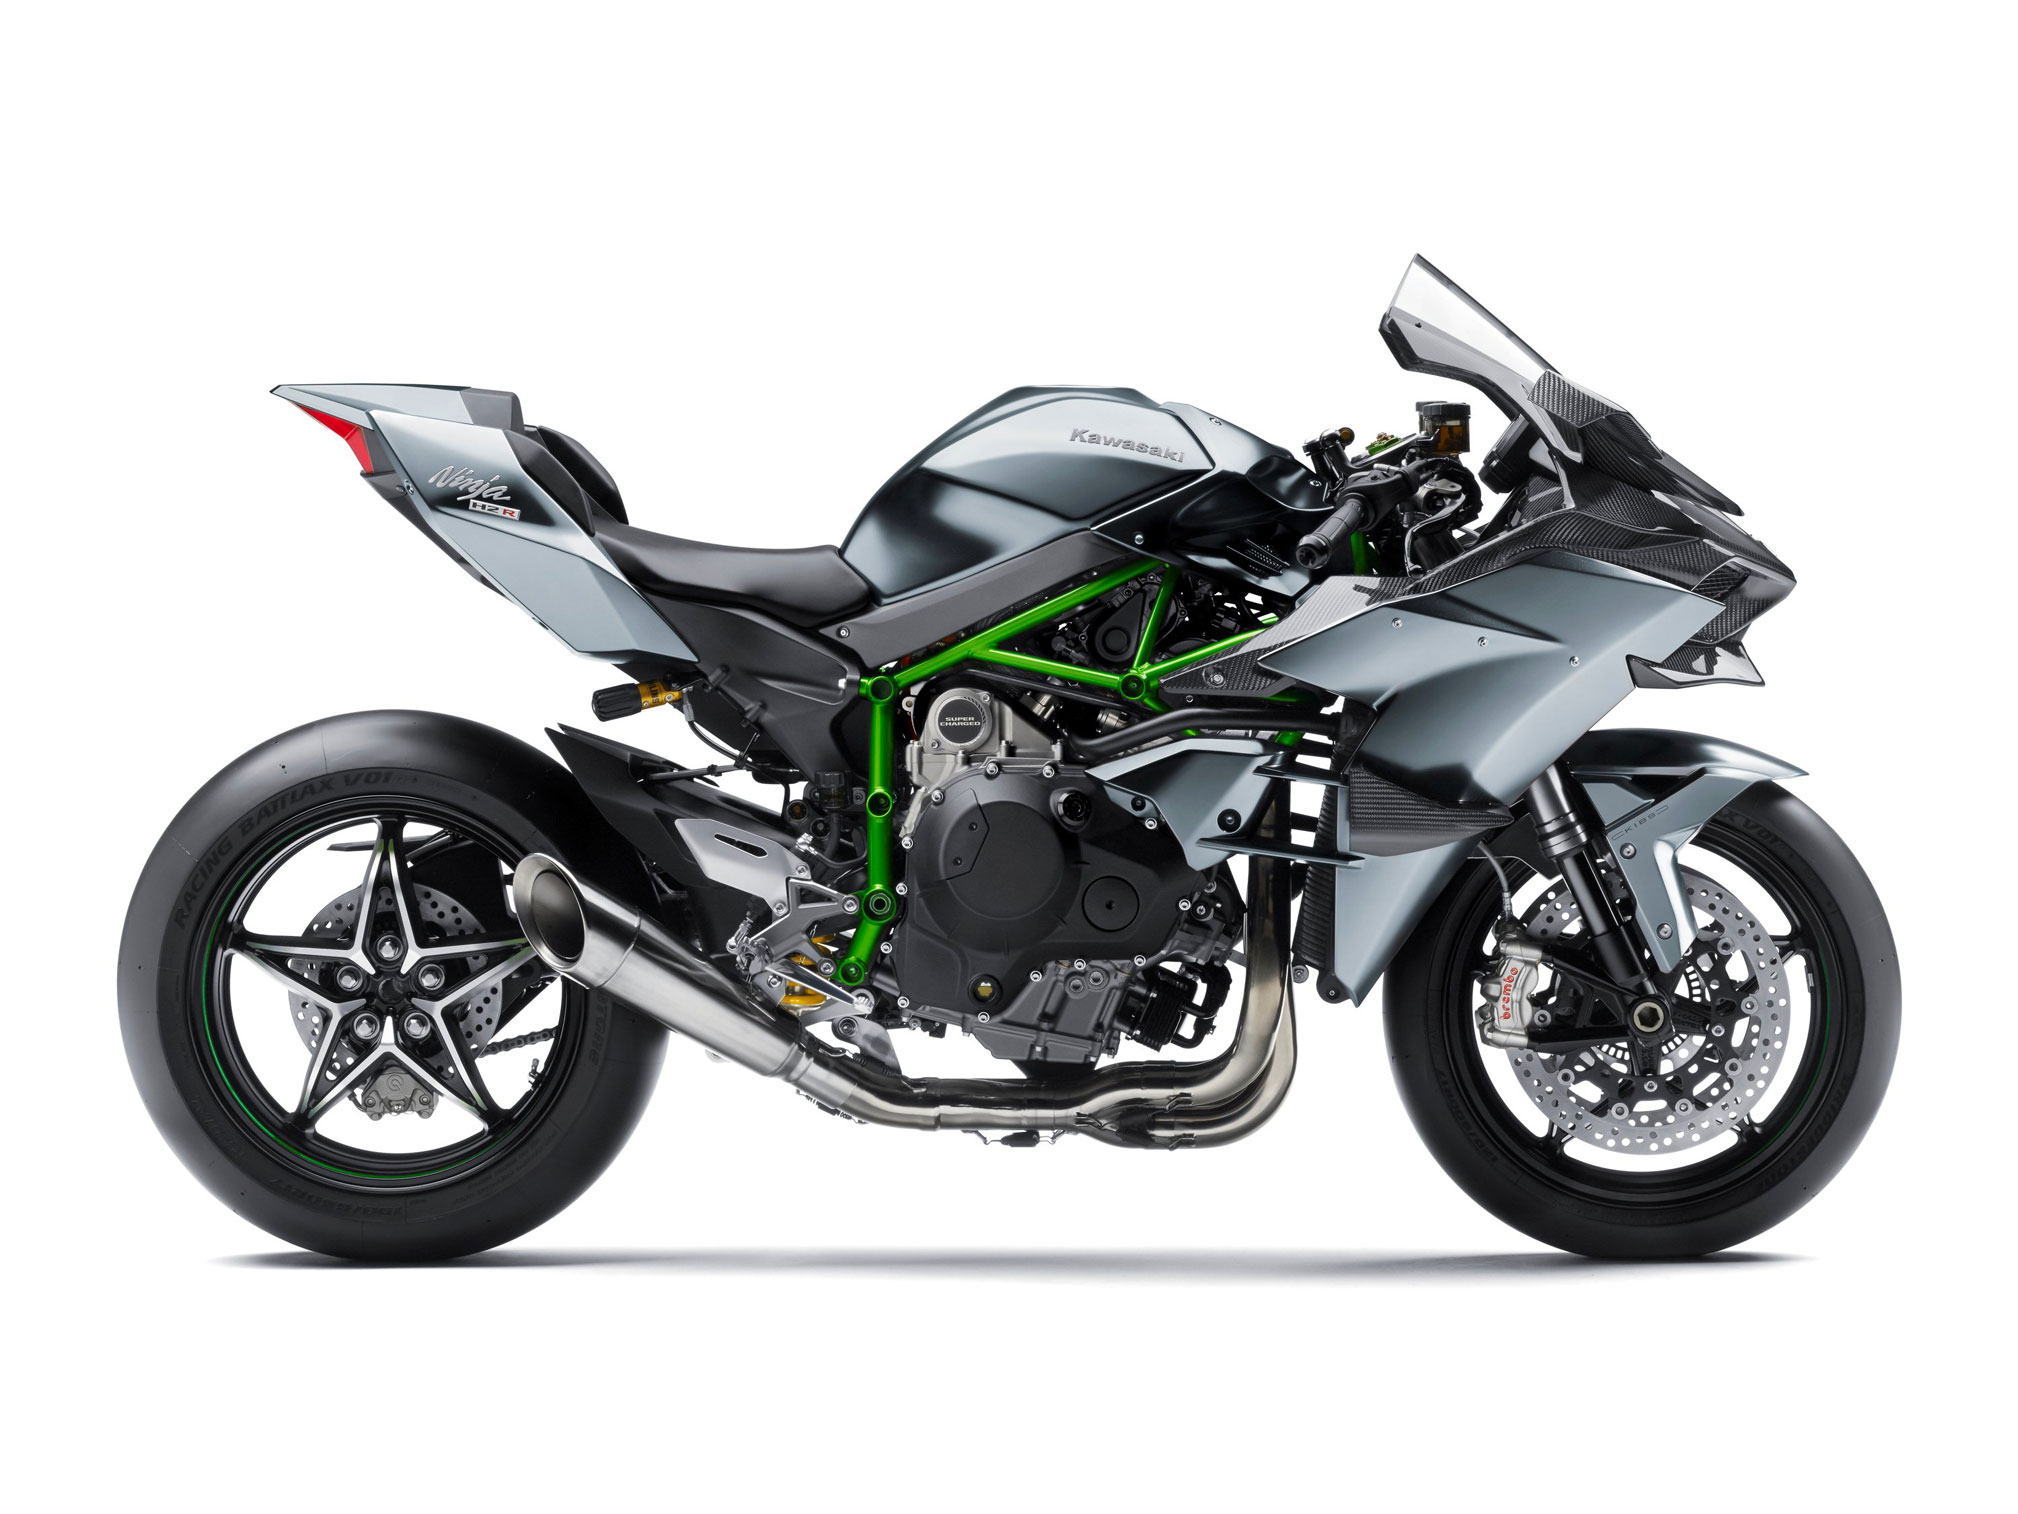 2018 kawasaki ninja h2r review total motorcycle. Black Bedroom Furniture Sets. Home Design Ideas